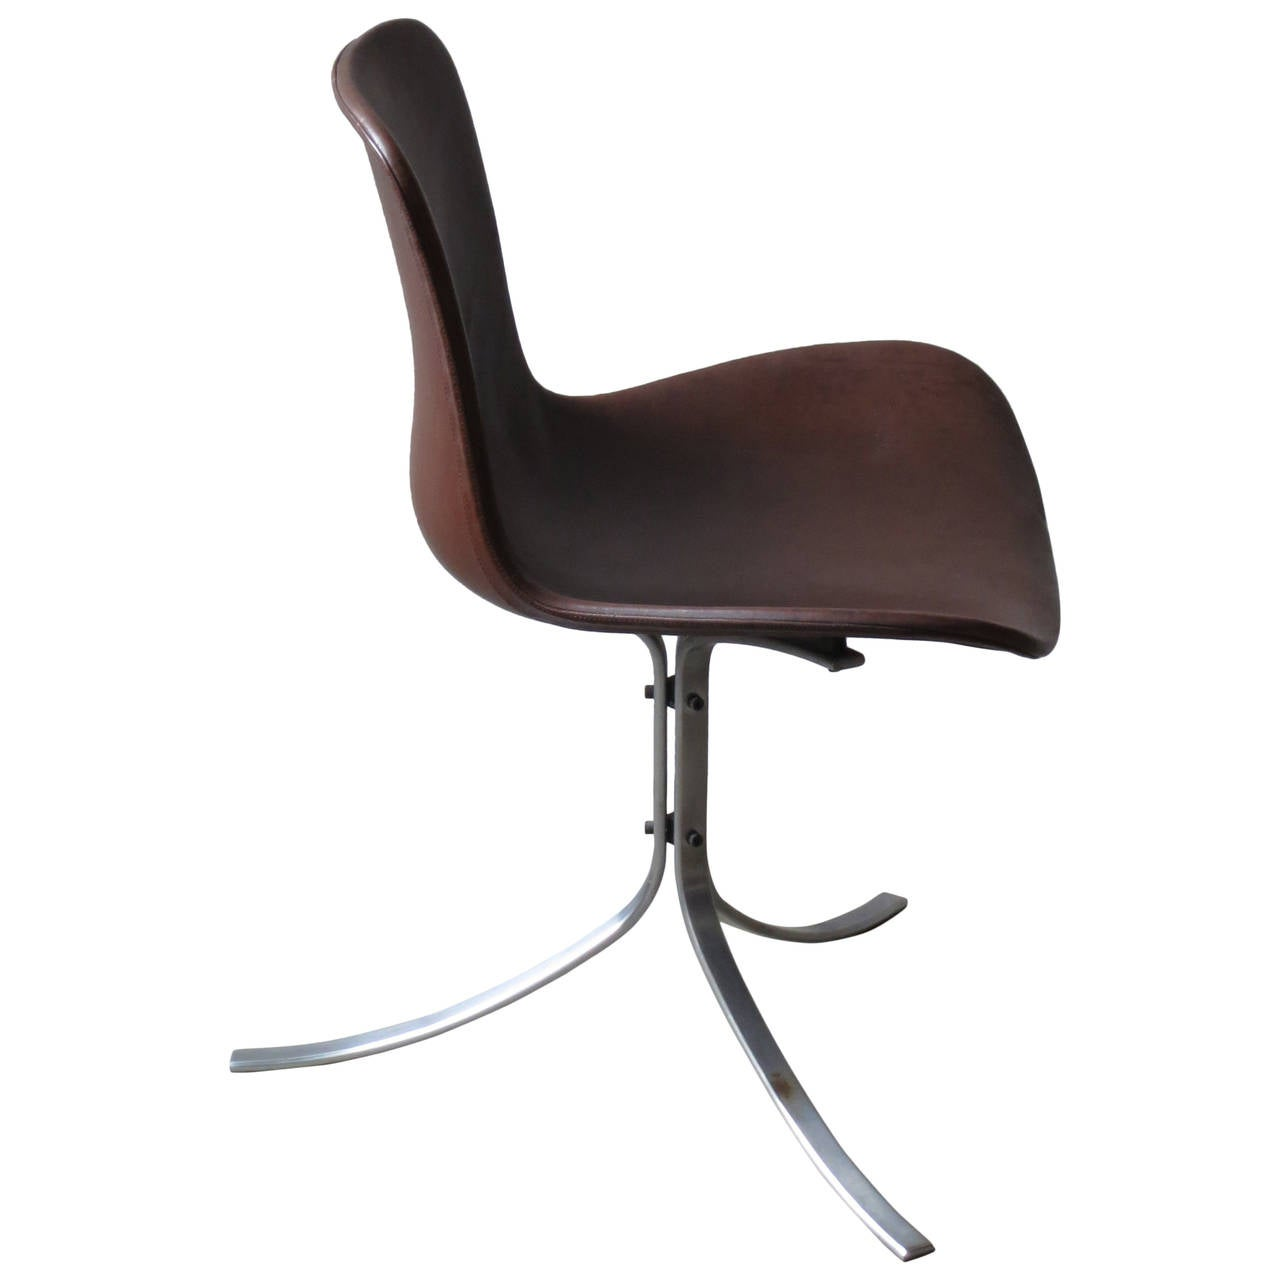 PK-9 Chair by Poul Kjærholm in patinated brown leather For Sale